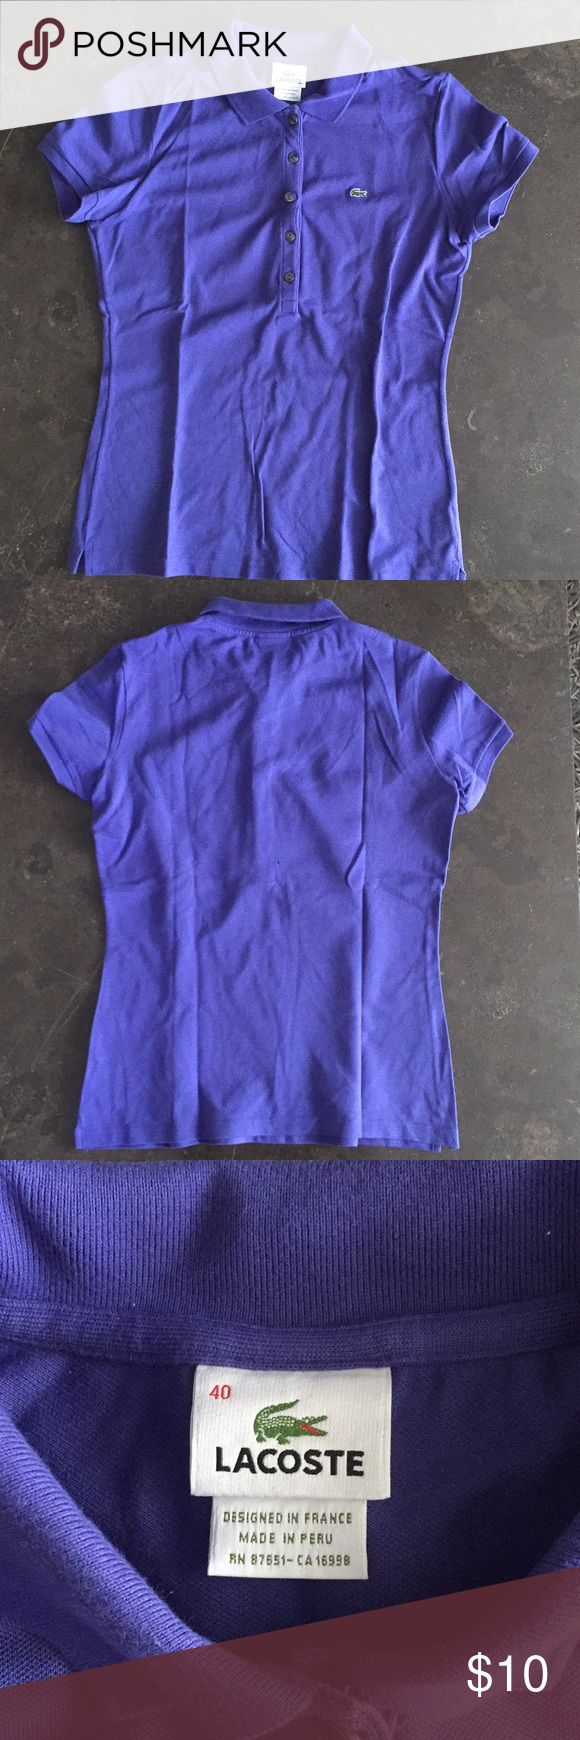 Lacoste women's fitted polo Lacoste women's fitted polo . Purple . Authentic size 40 Lacoste Tops Tees - Short Sleeve